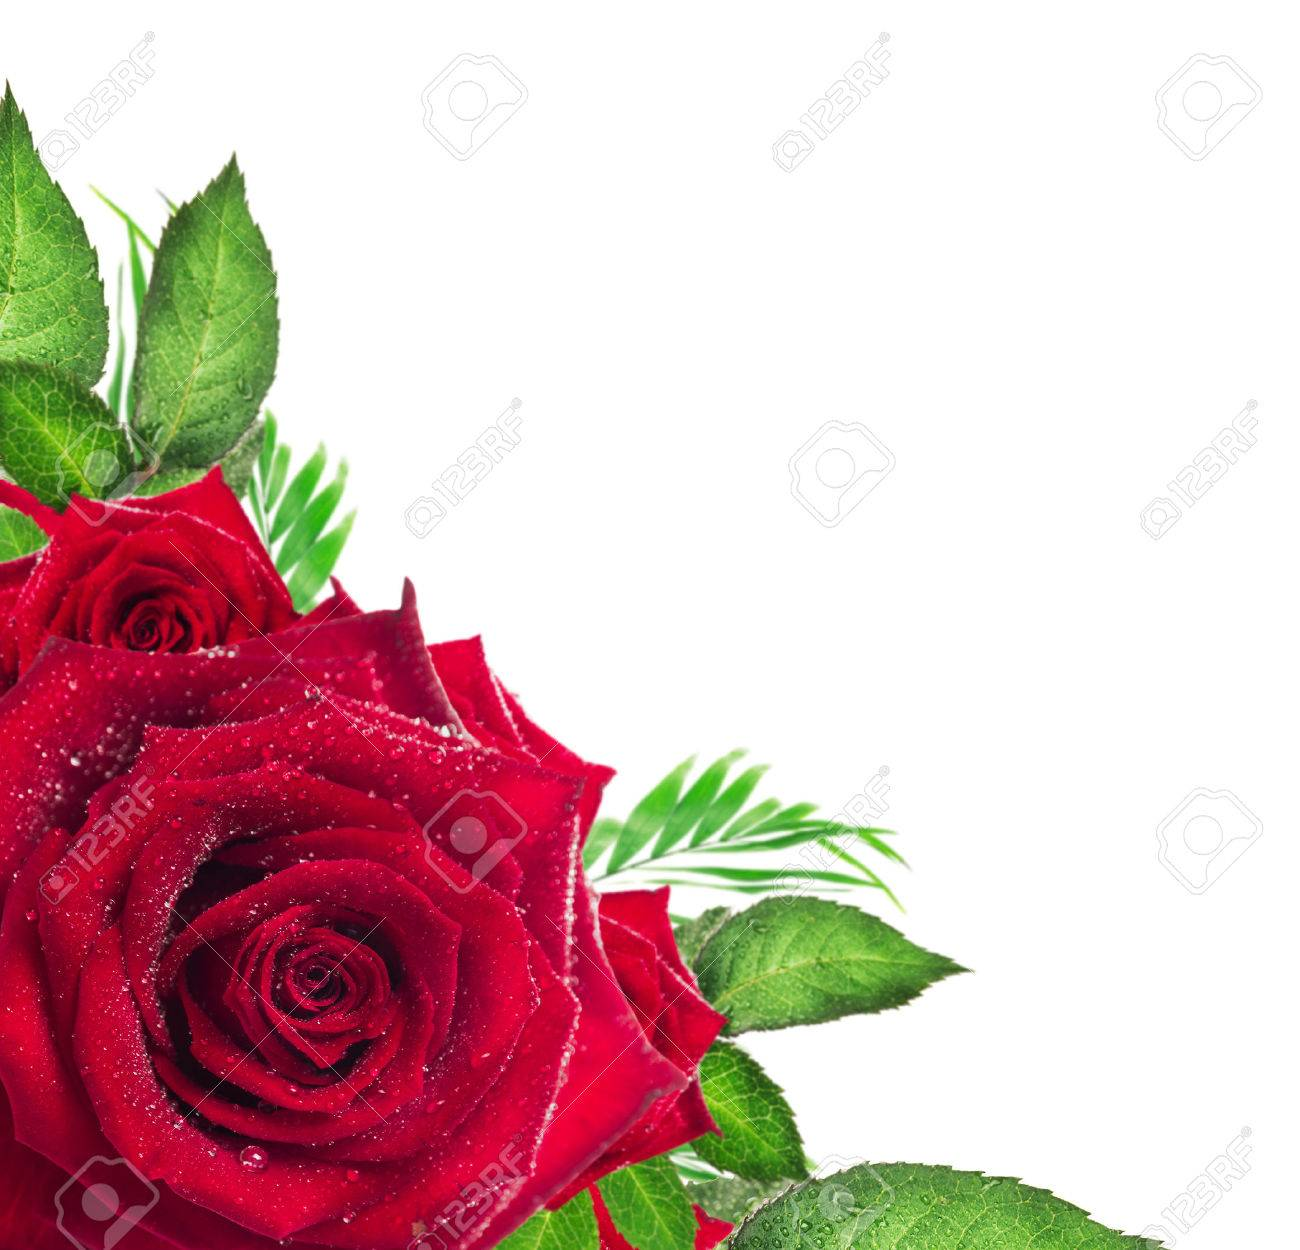 Red Rose Flower With Green Leaves On White Background Corner Border Stock Photo